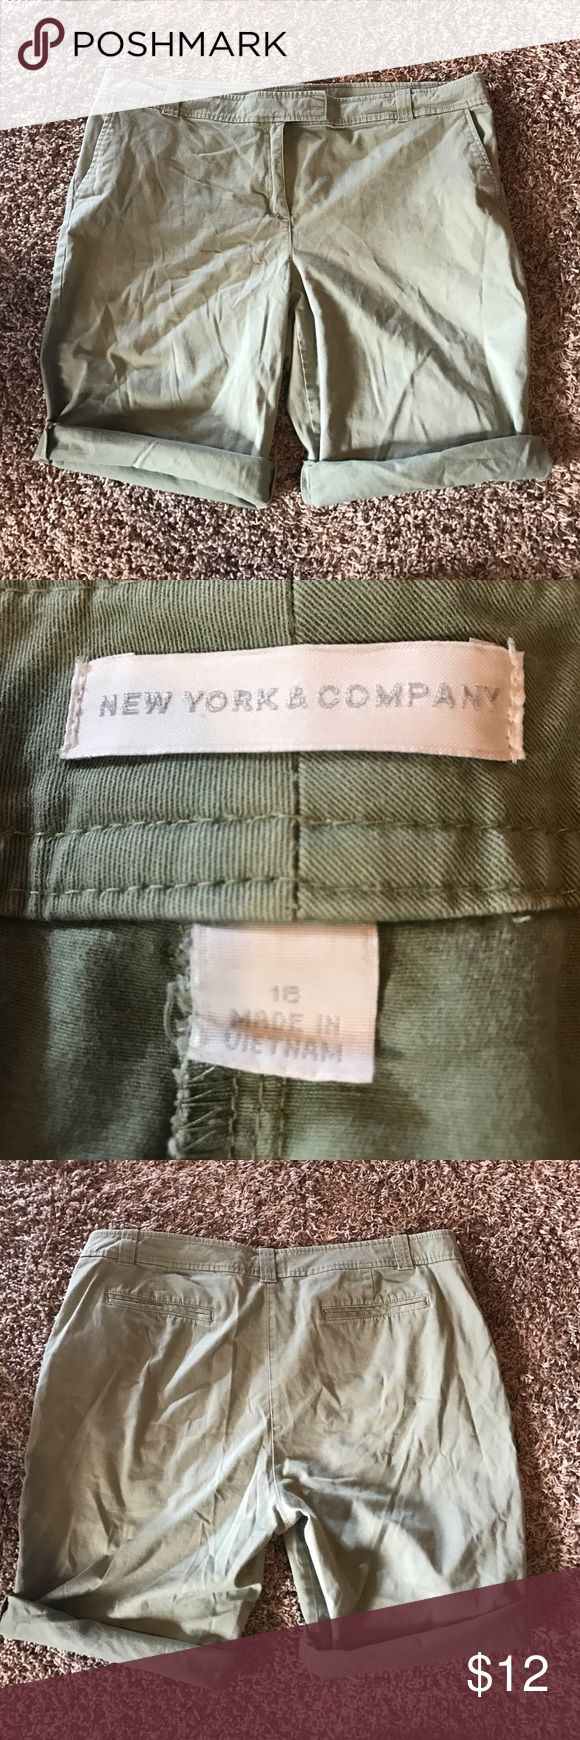 New York & Company army green Bermuda shorts New York & Company army green Bermuda shorts. Can be rolled up to make shorter as seen in the pics. Size 18 New York & Company Shorts Bermudas